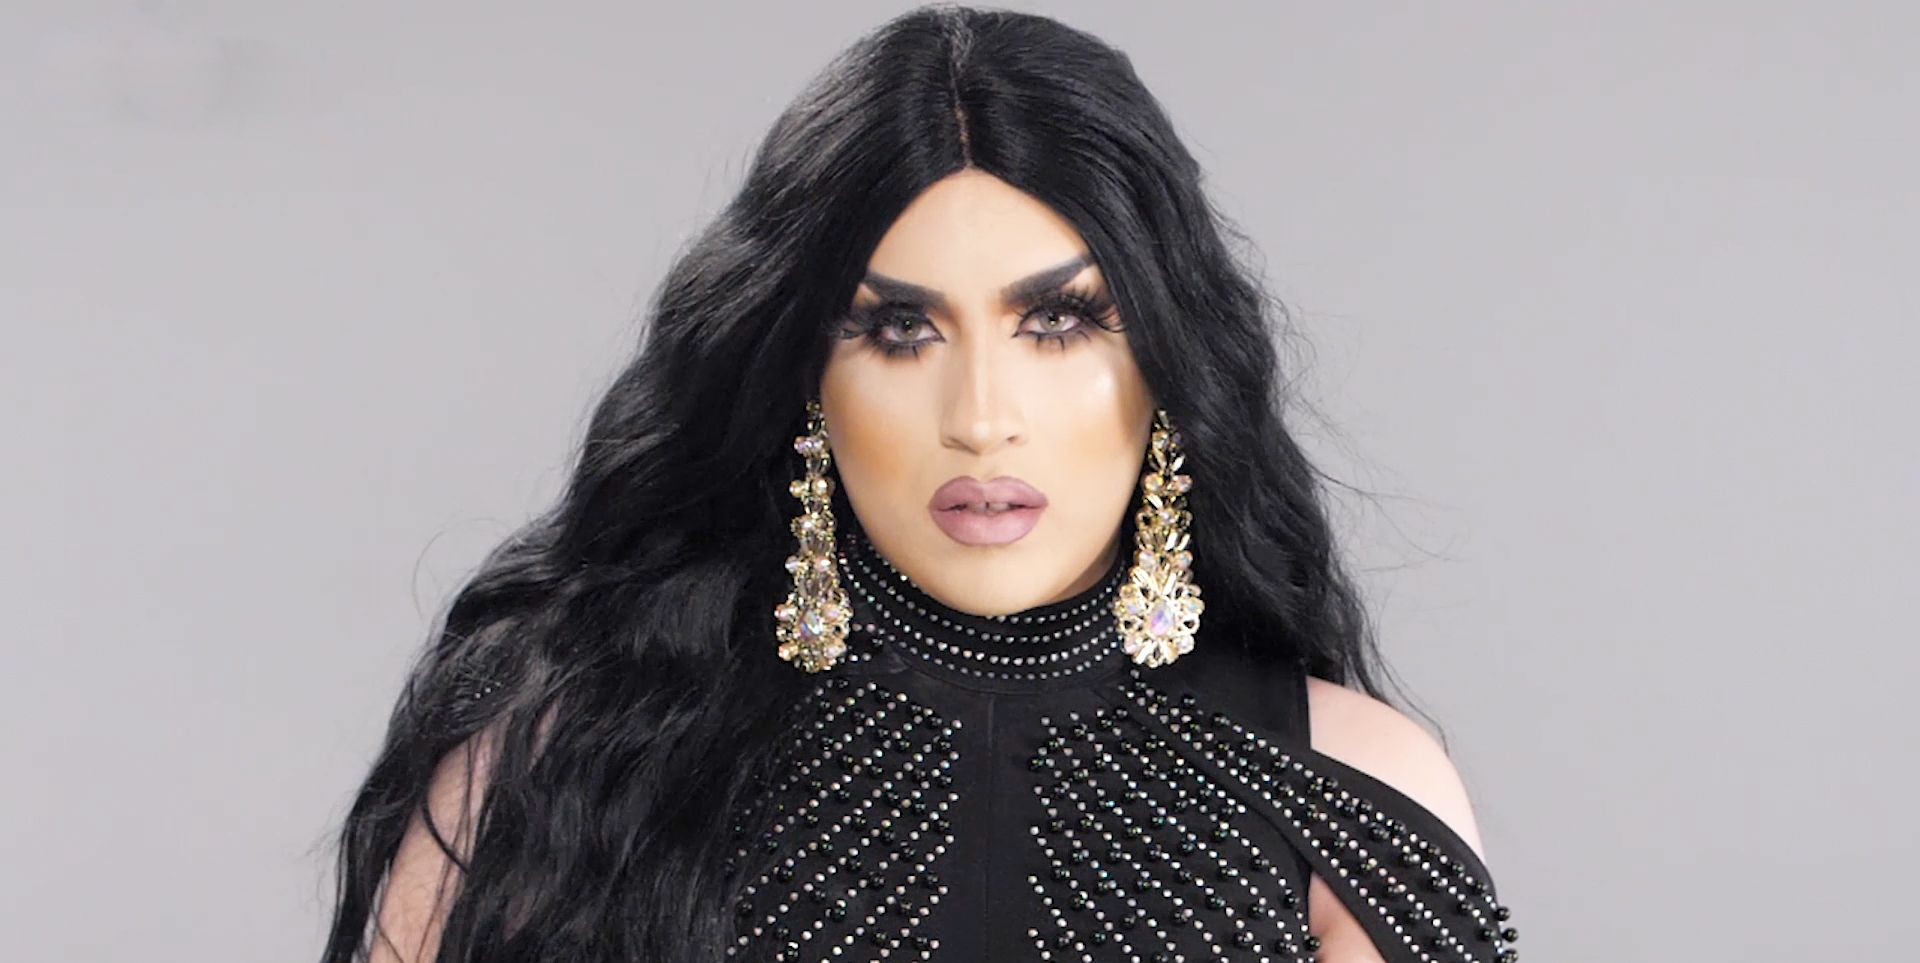 Former RuPaul's Drag Race contestant Janelle No. 5 channels the Kardashian Klan in this makeup transformation video.